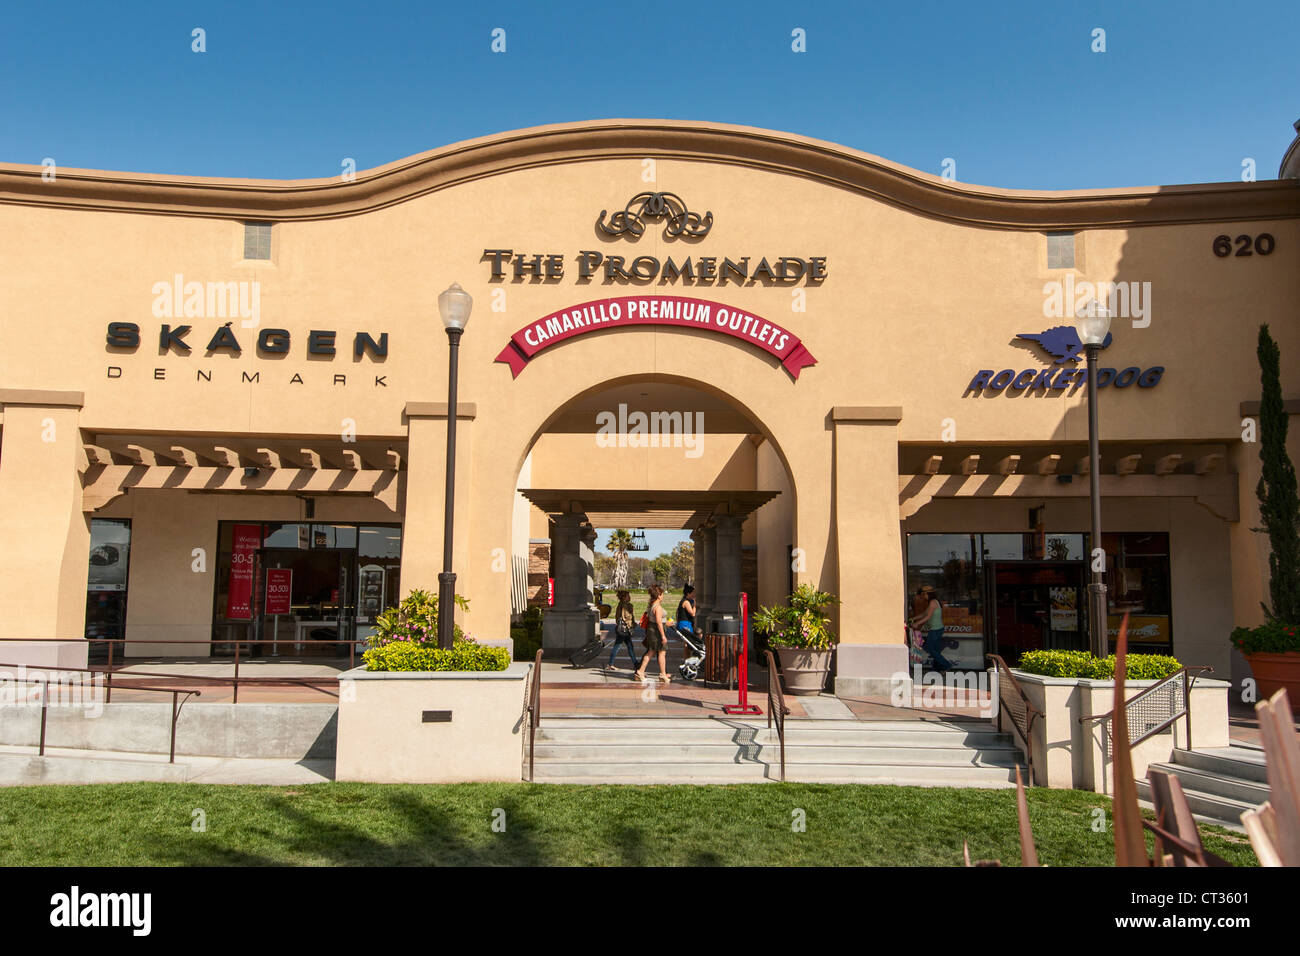 Premium outlets coupons camarillo